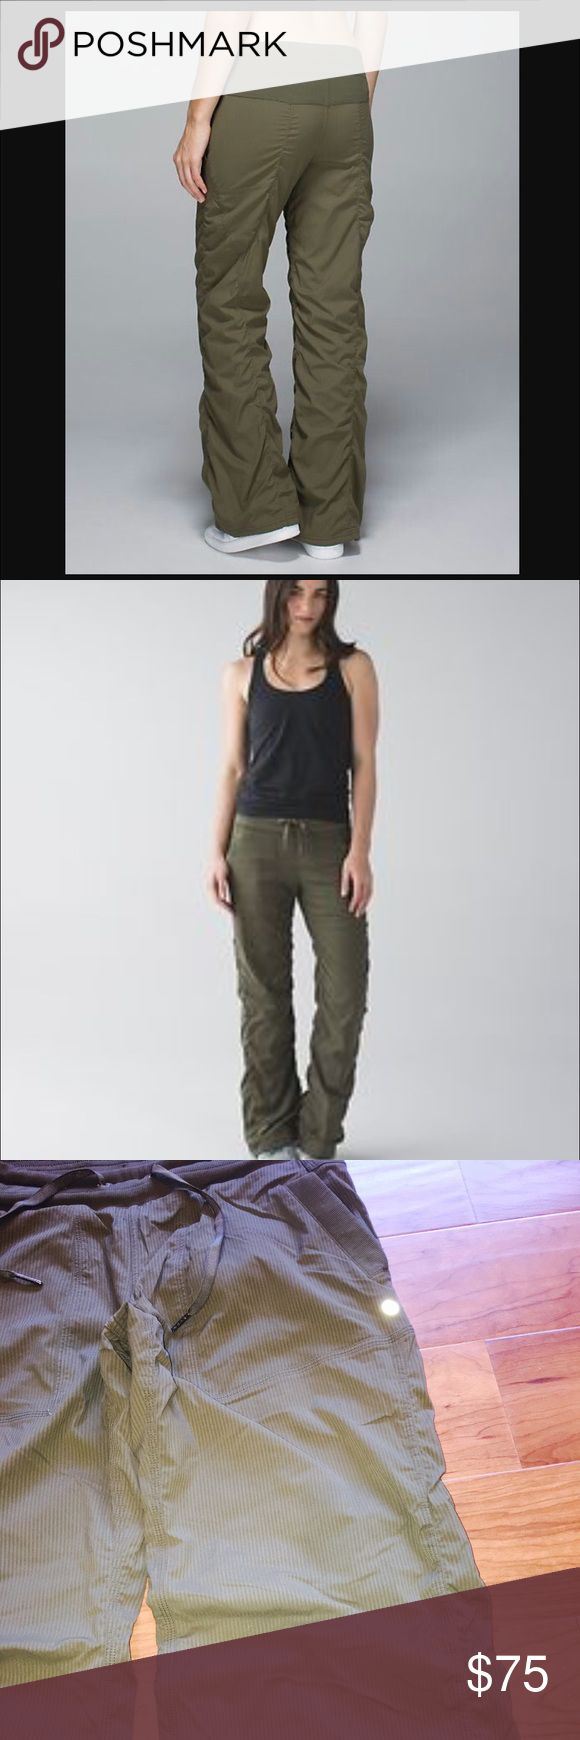 Lululemon Studio Pant II in Fatigue Green SZ 8 These are regular size not long they are lined. Lululemon's dance studio pants are known for having elastic waistbands that roll meaning elastic just bends over. The waistband is rolled on these pants doesn't affect the pants in anyway shape or form. Very hard to find color my price is firm excellent shape no damage whatsoever. lululemon athletica Pants Track Pants & Joggers